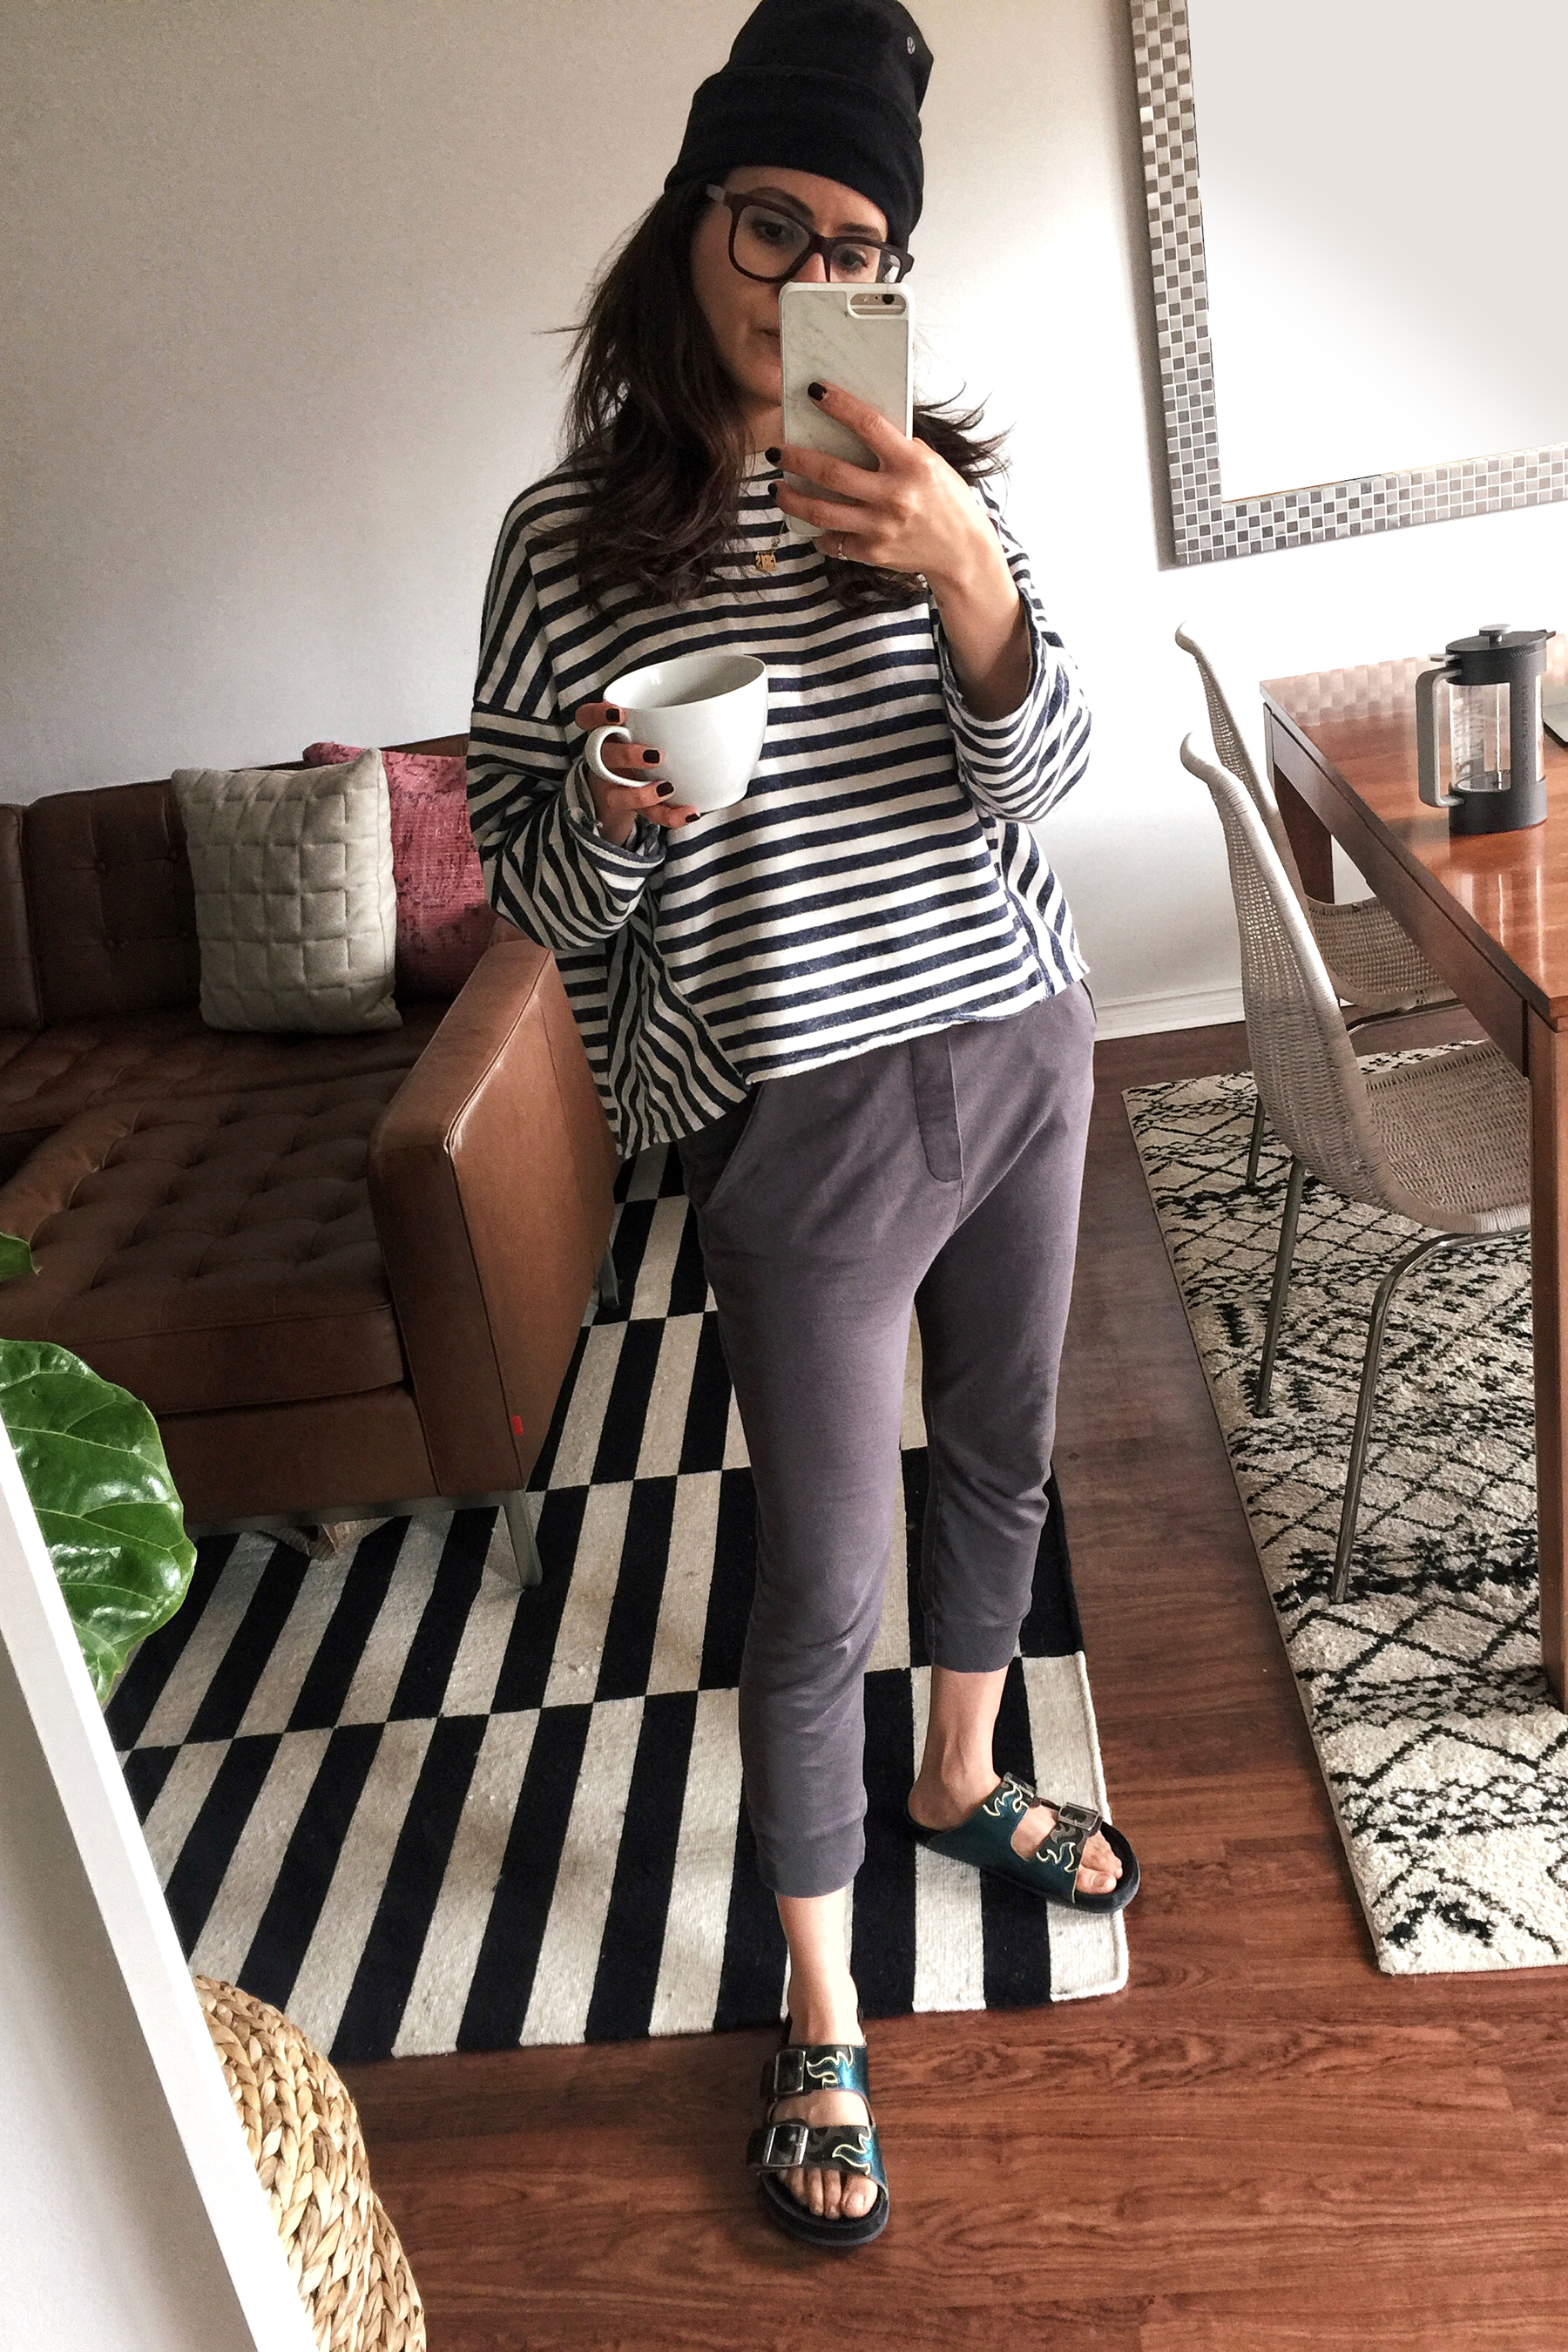 woahstyle.com - 365 outfits - day 3 spring 2018 - nathalie martin 01.jpg